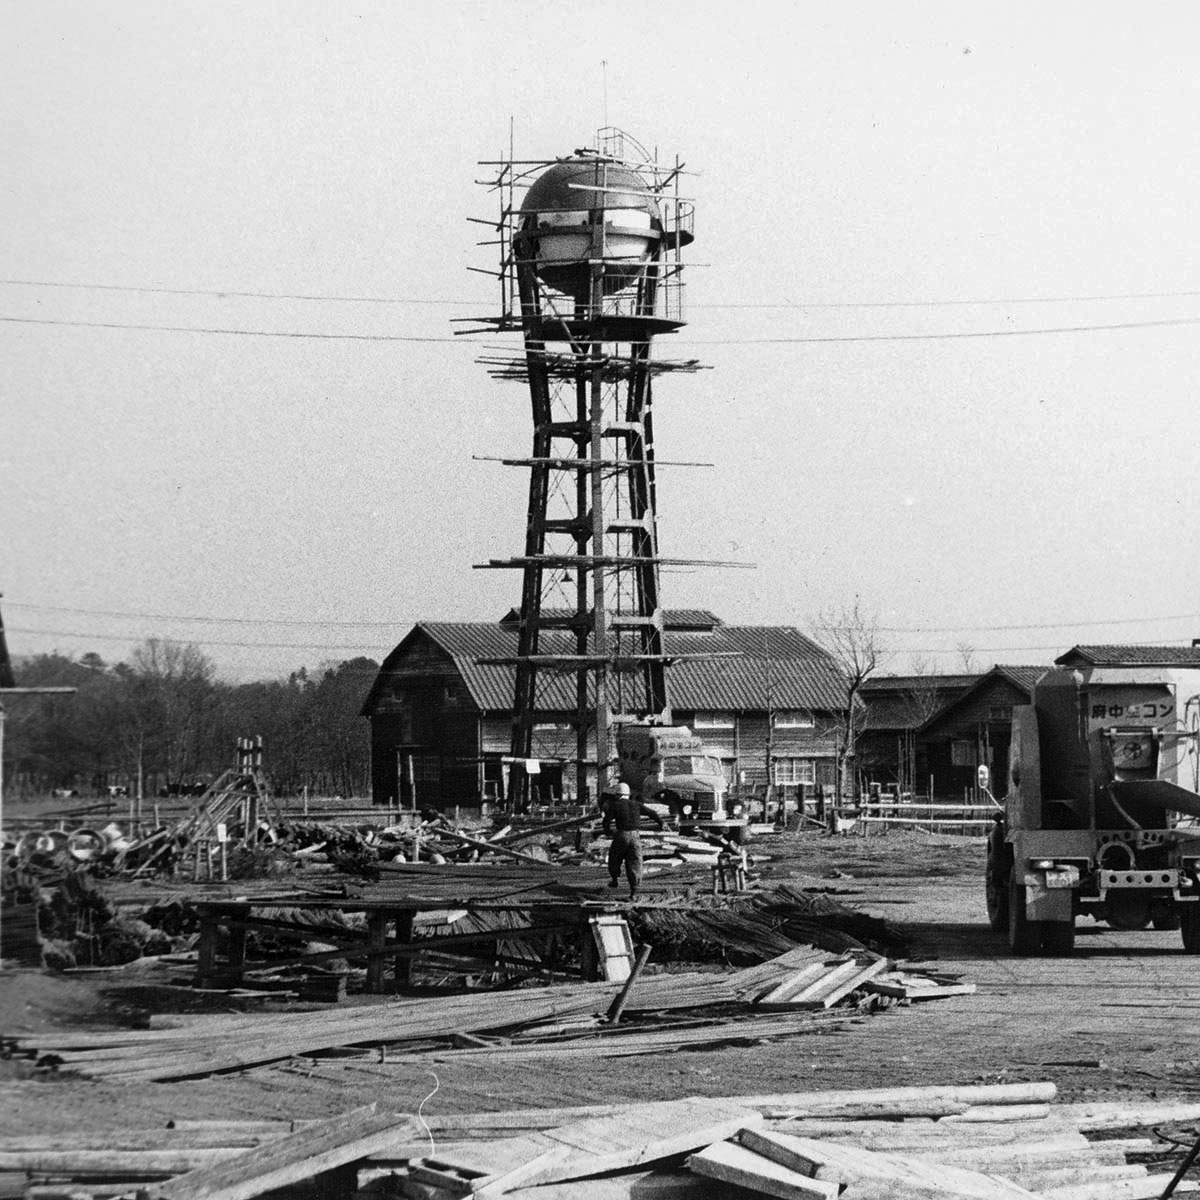 ASIJ Chofu Campus Water Tower Construction from 1963